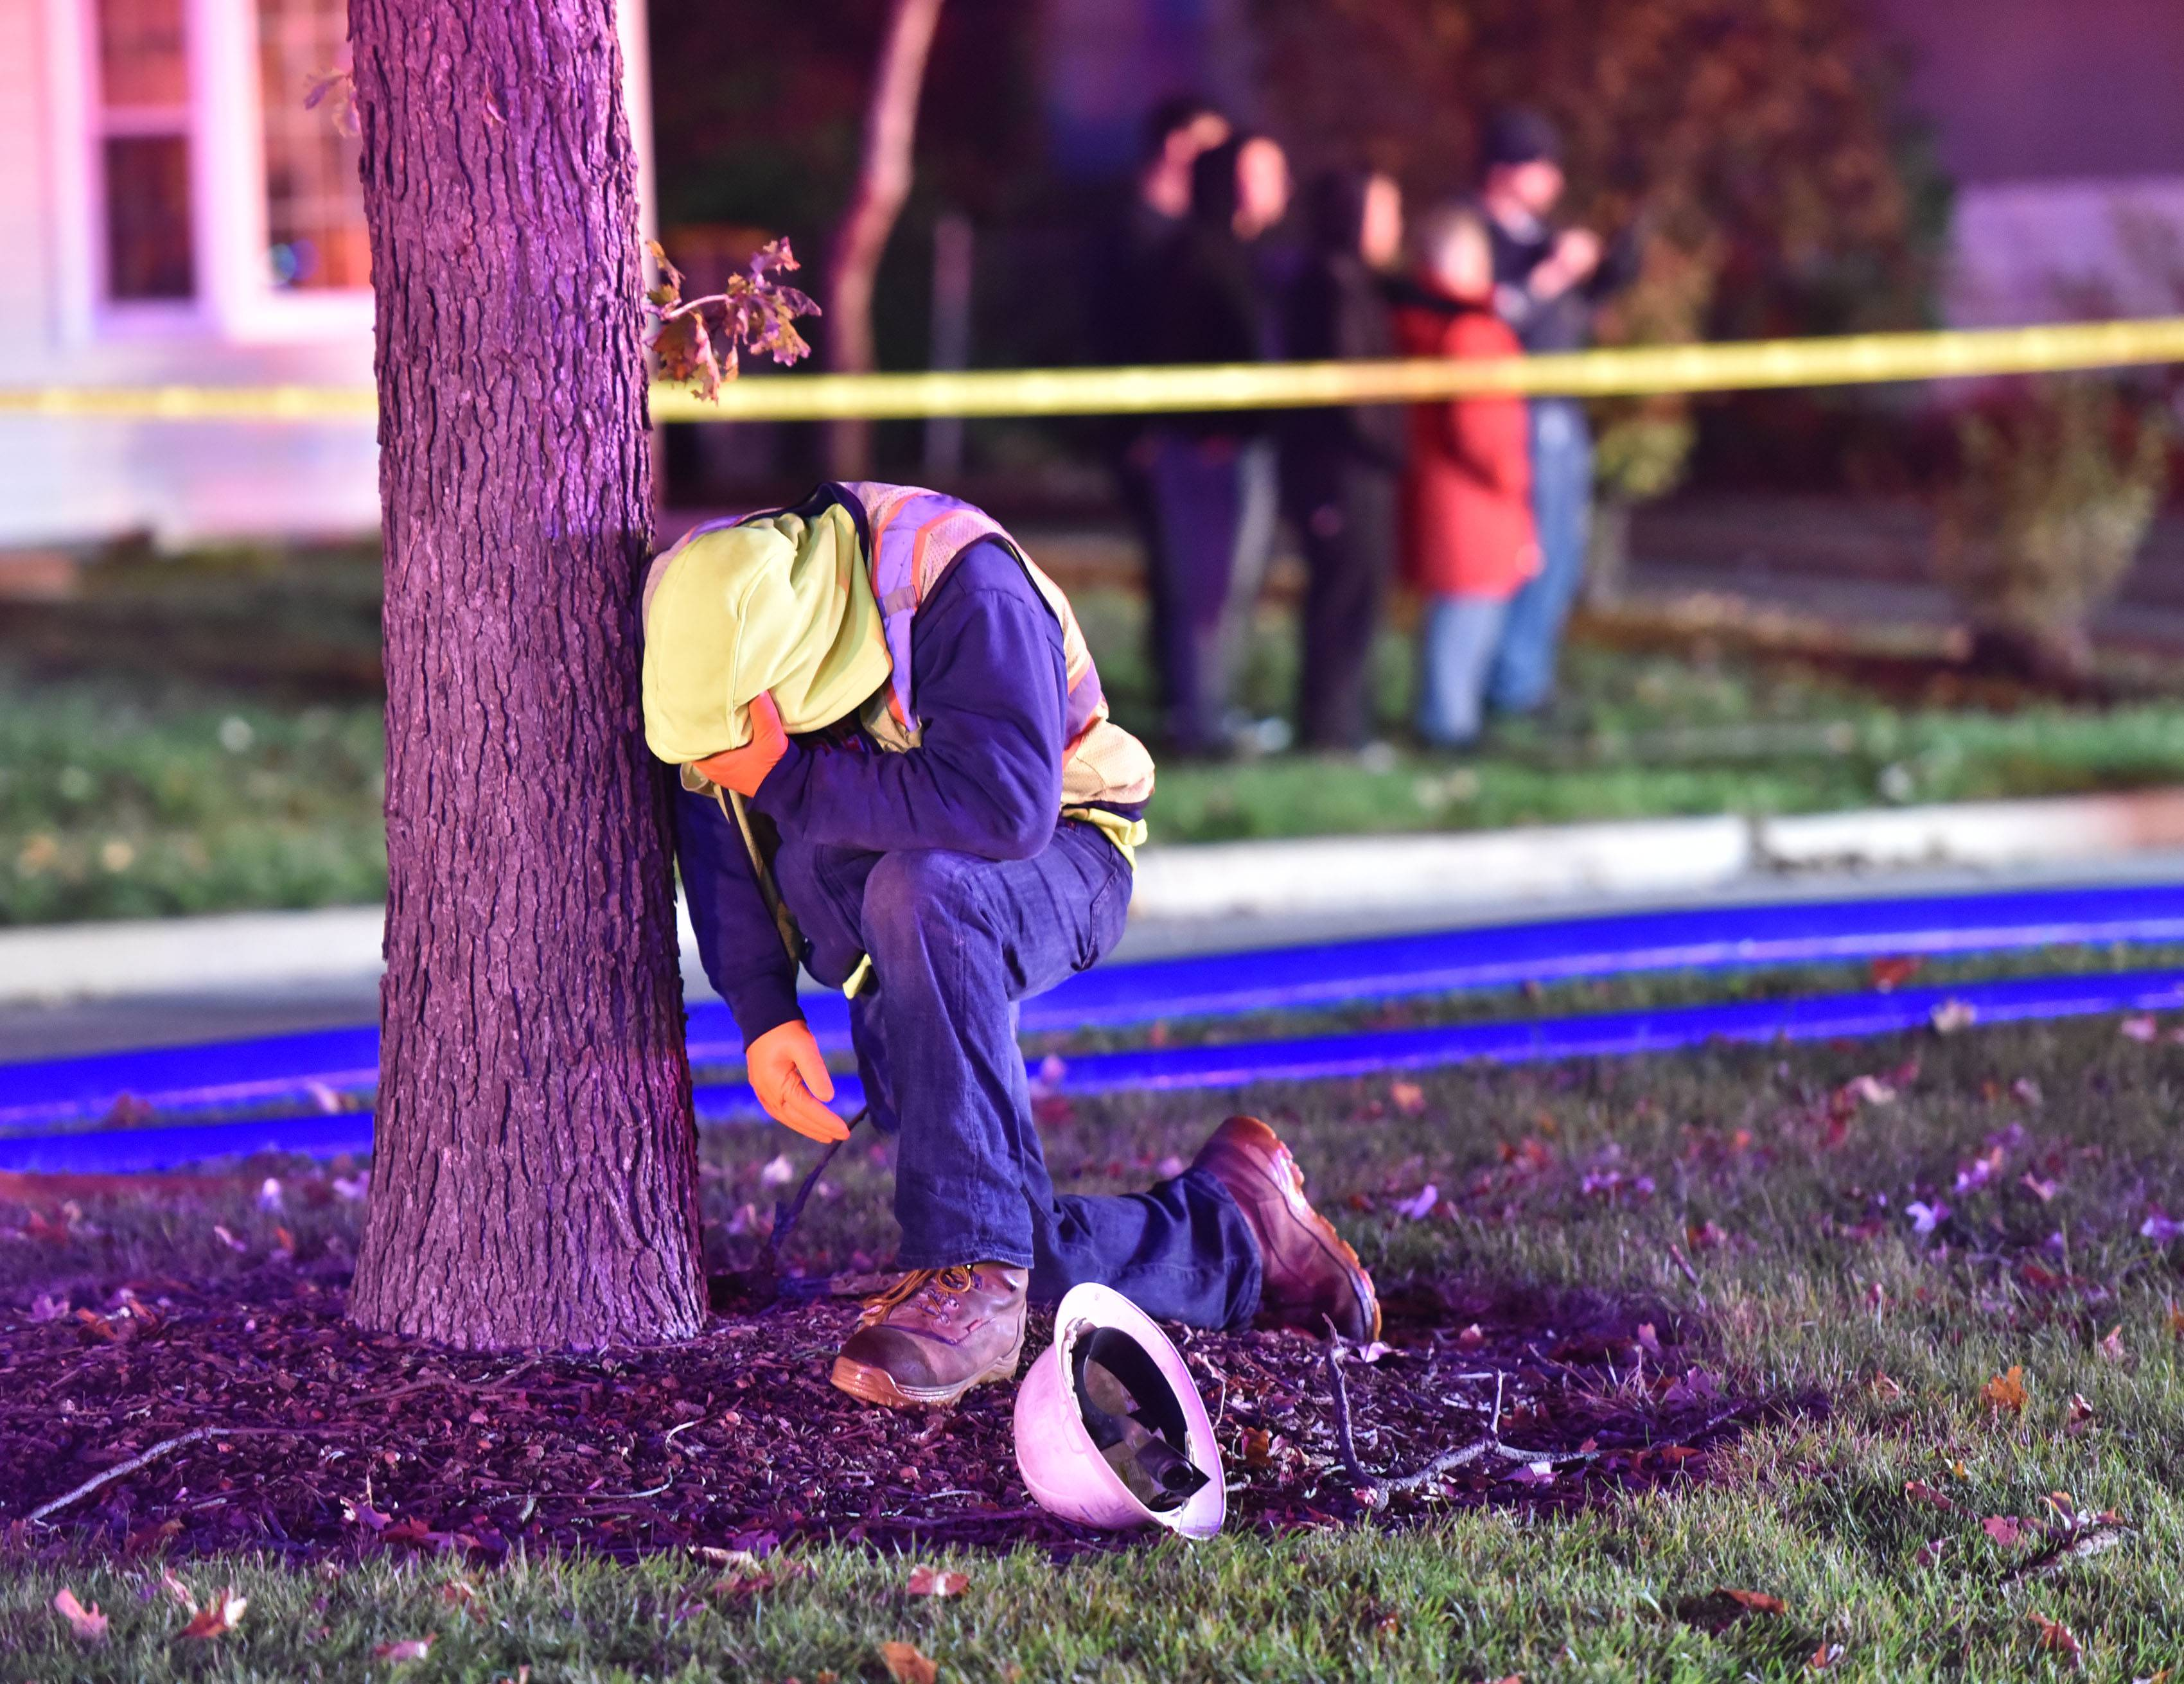 In this photo from October 2017, a man reacts after crews pulled a worker from a sewer line on South Park Boulevard in Streamwood.